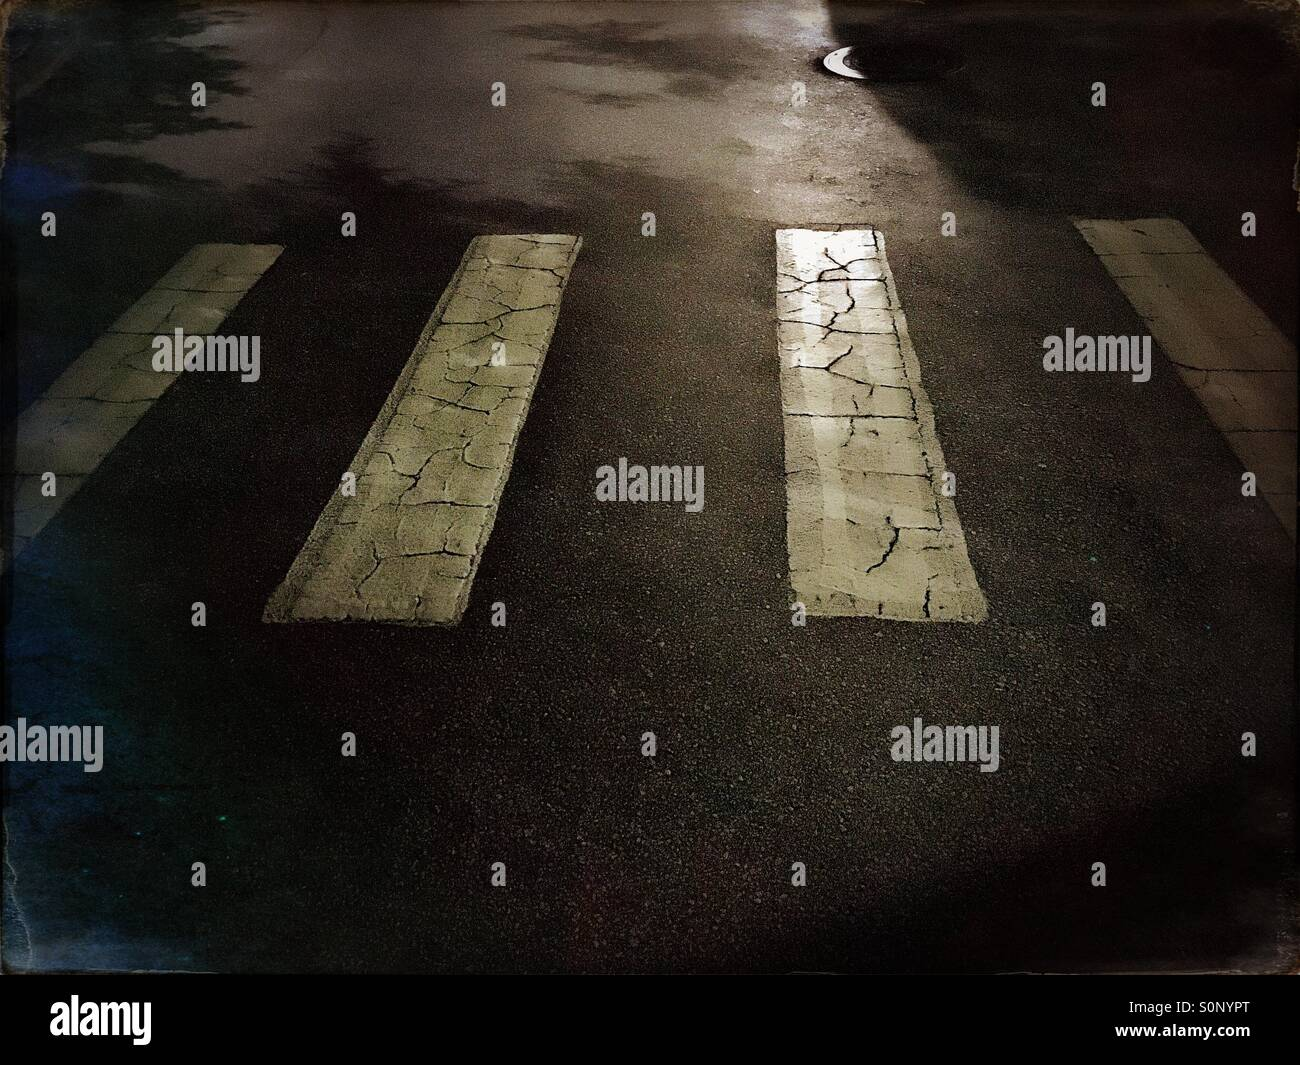 Crosswalk at night - Stock Image